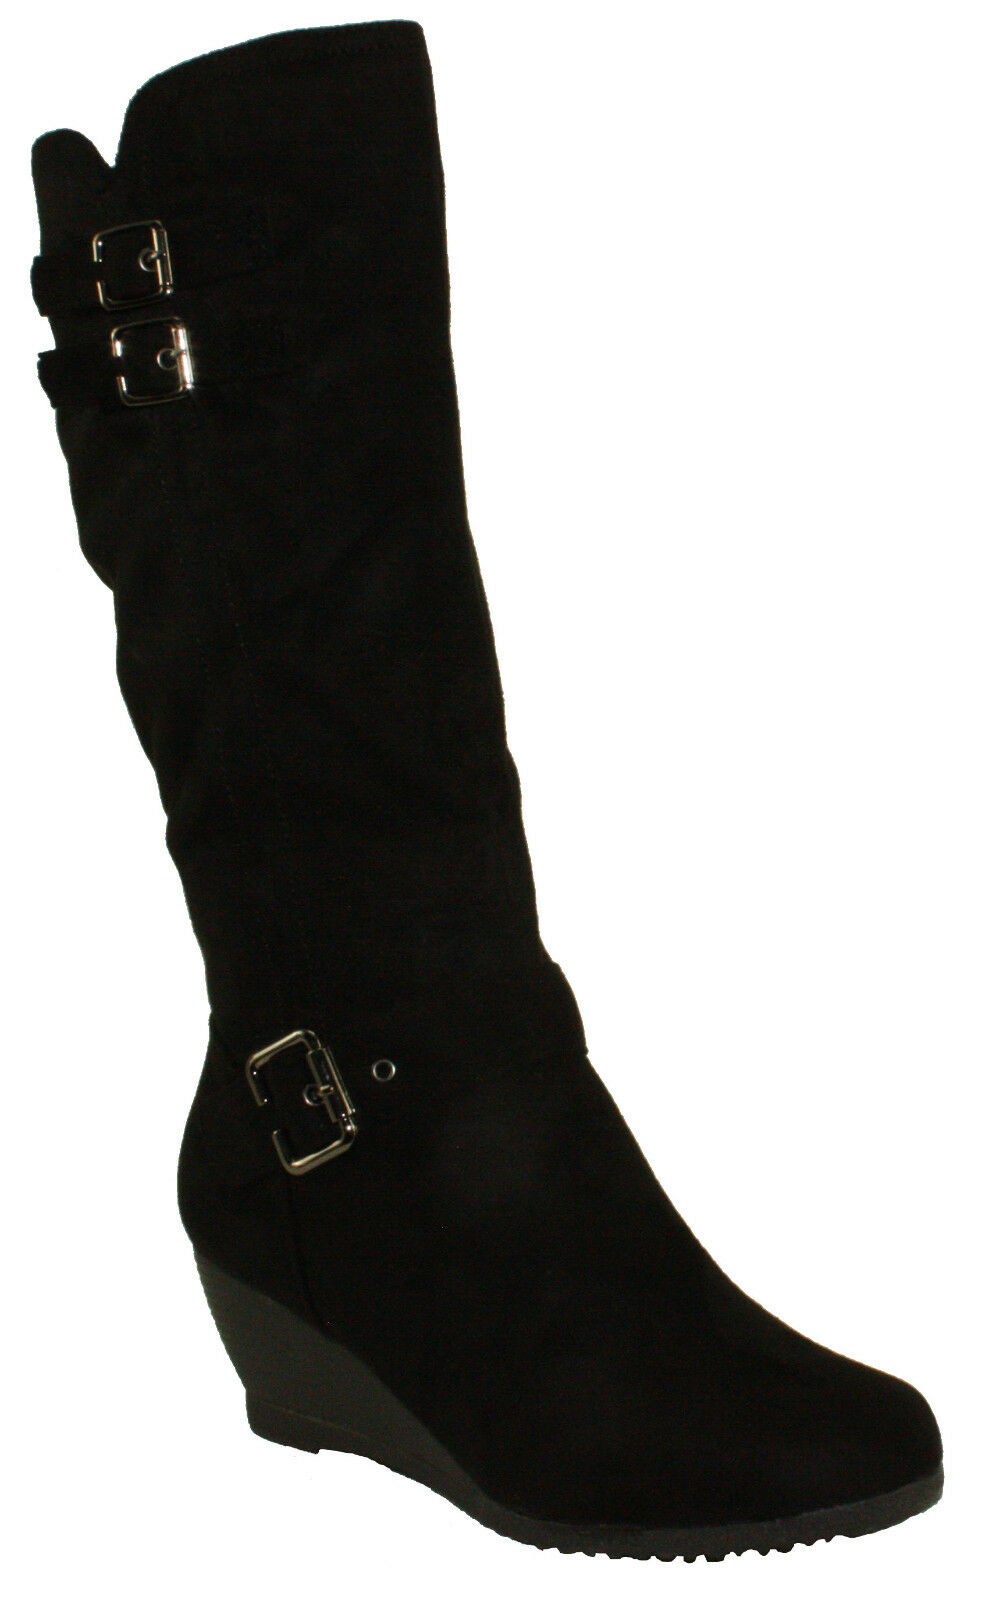 DbDk Women's Monicay-2 Faux Suede Round Toe Wedge Heel Mid-Calf Boots